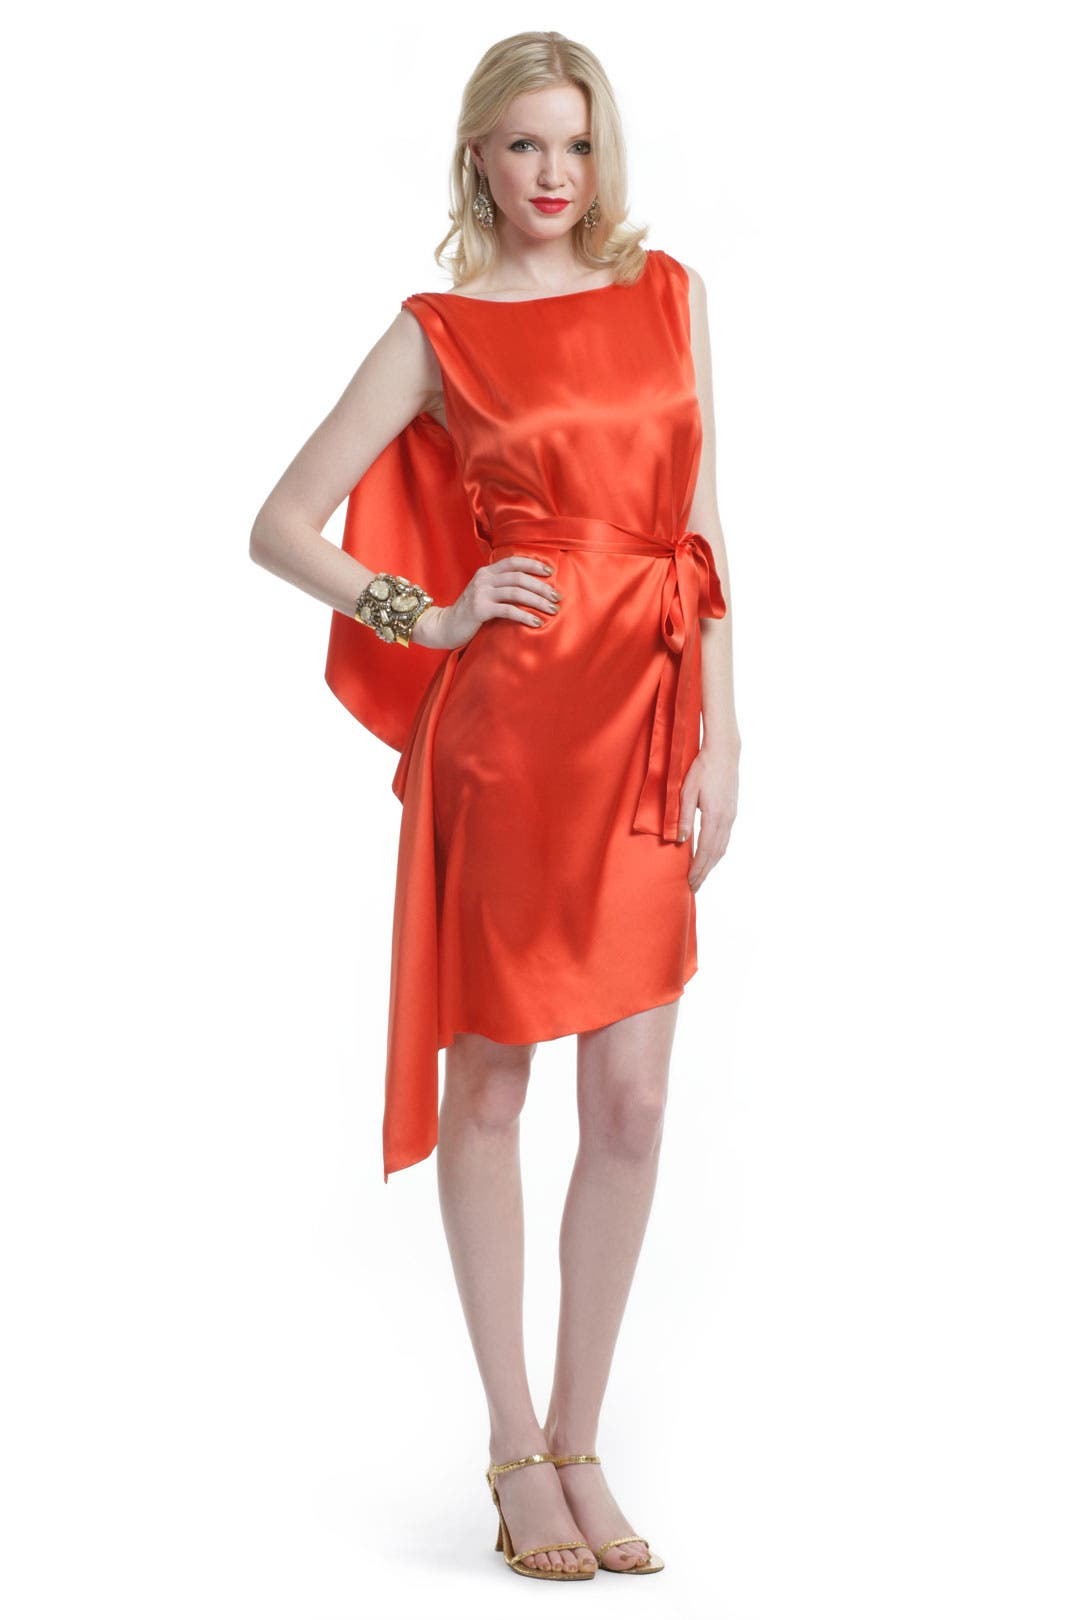 Paprika Spice Dress by Carlos Miele